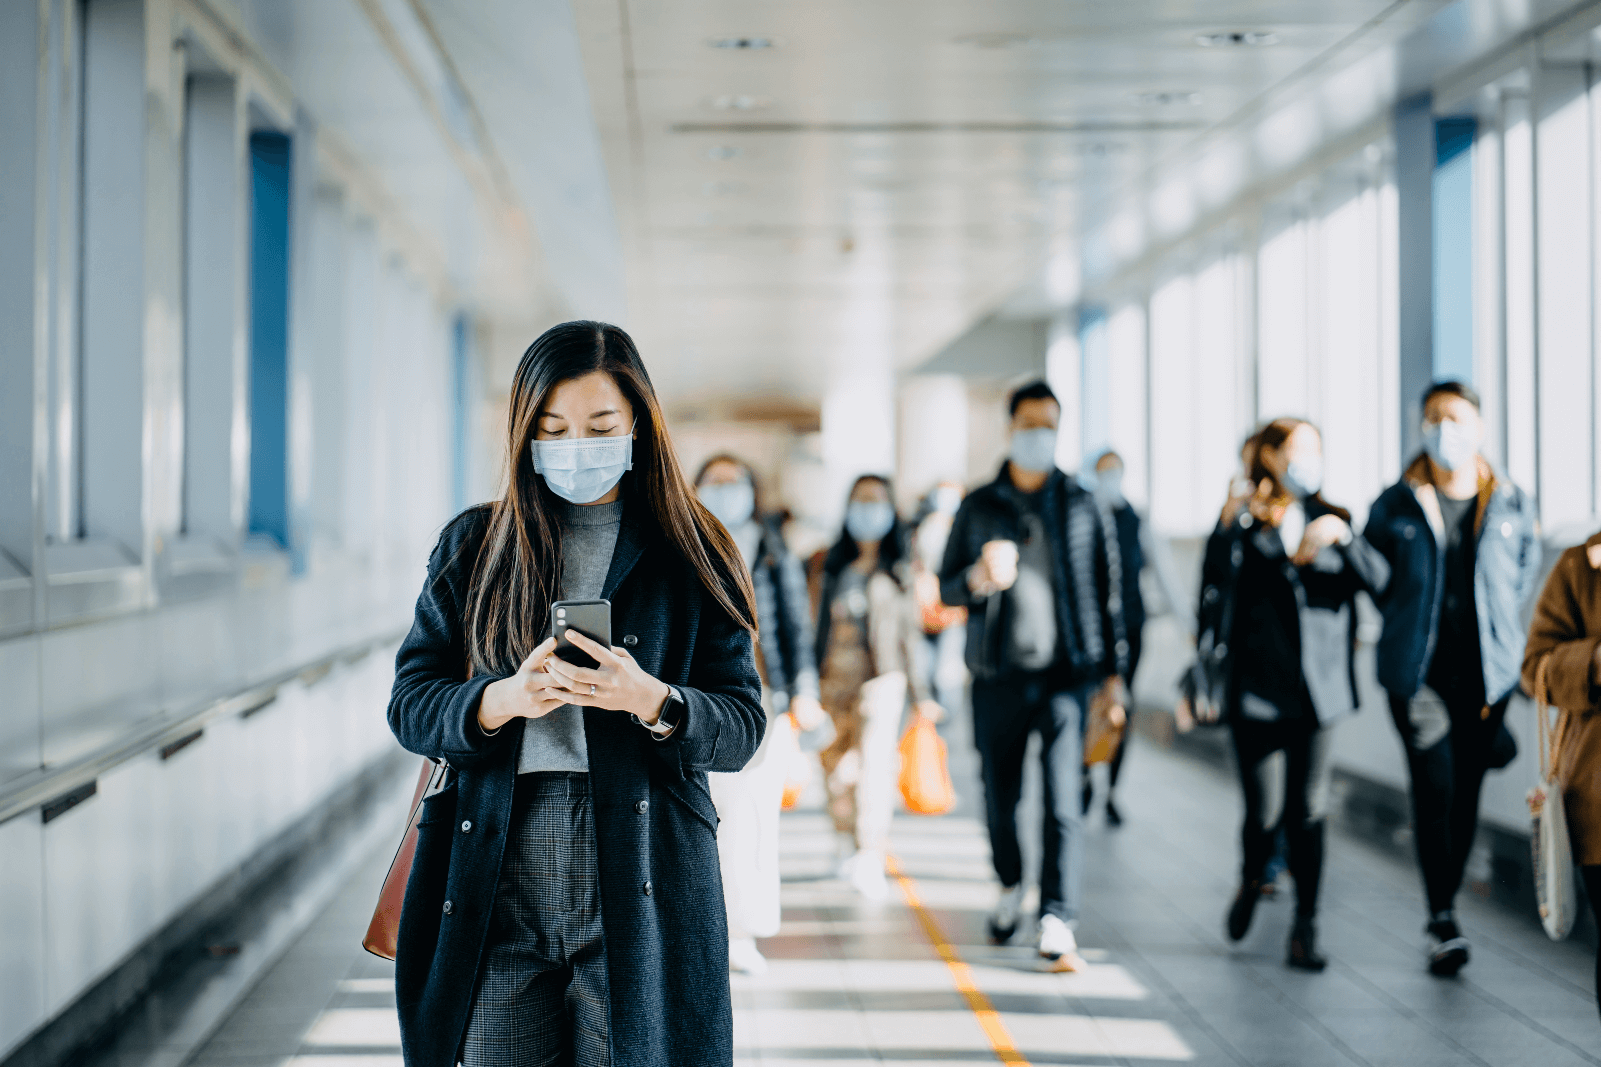 Image of people walking while wearing medical face masks